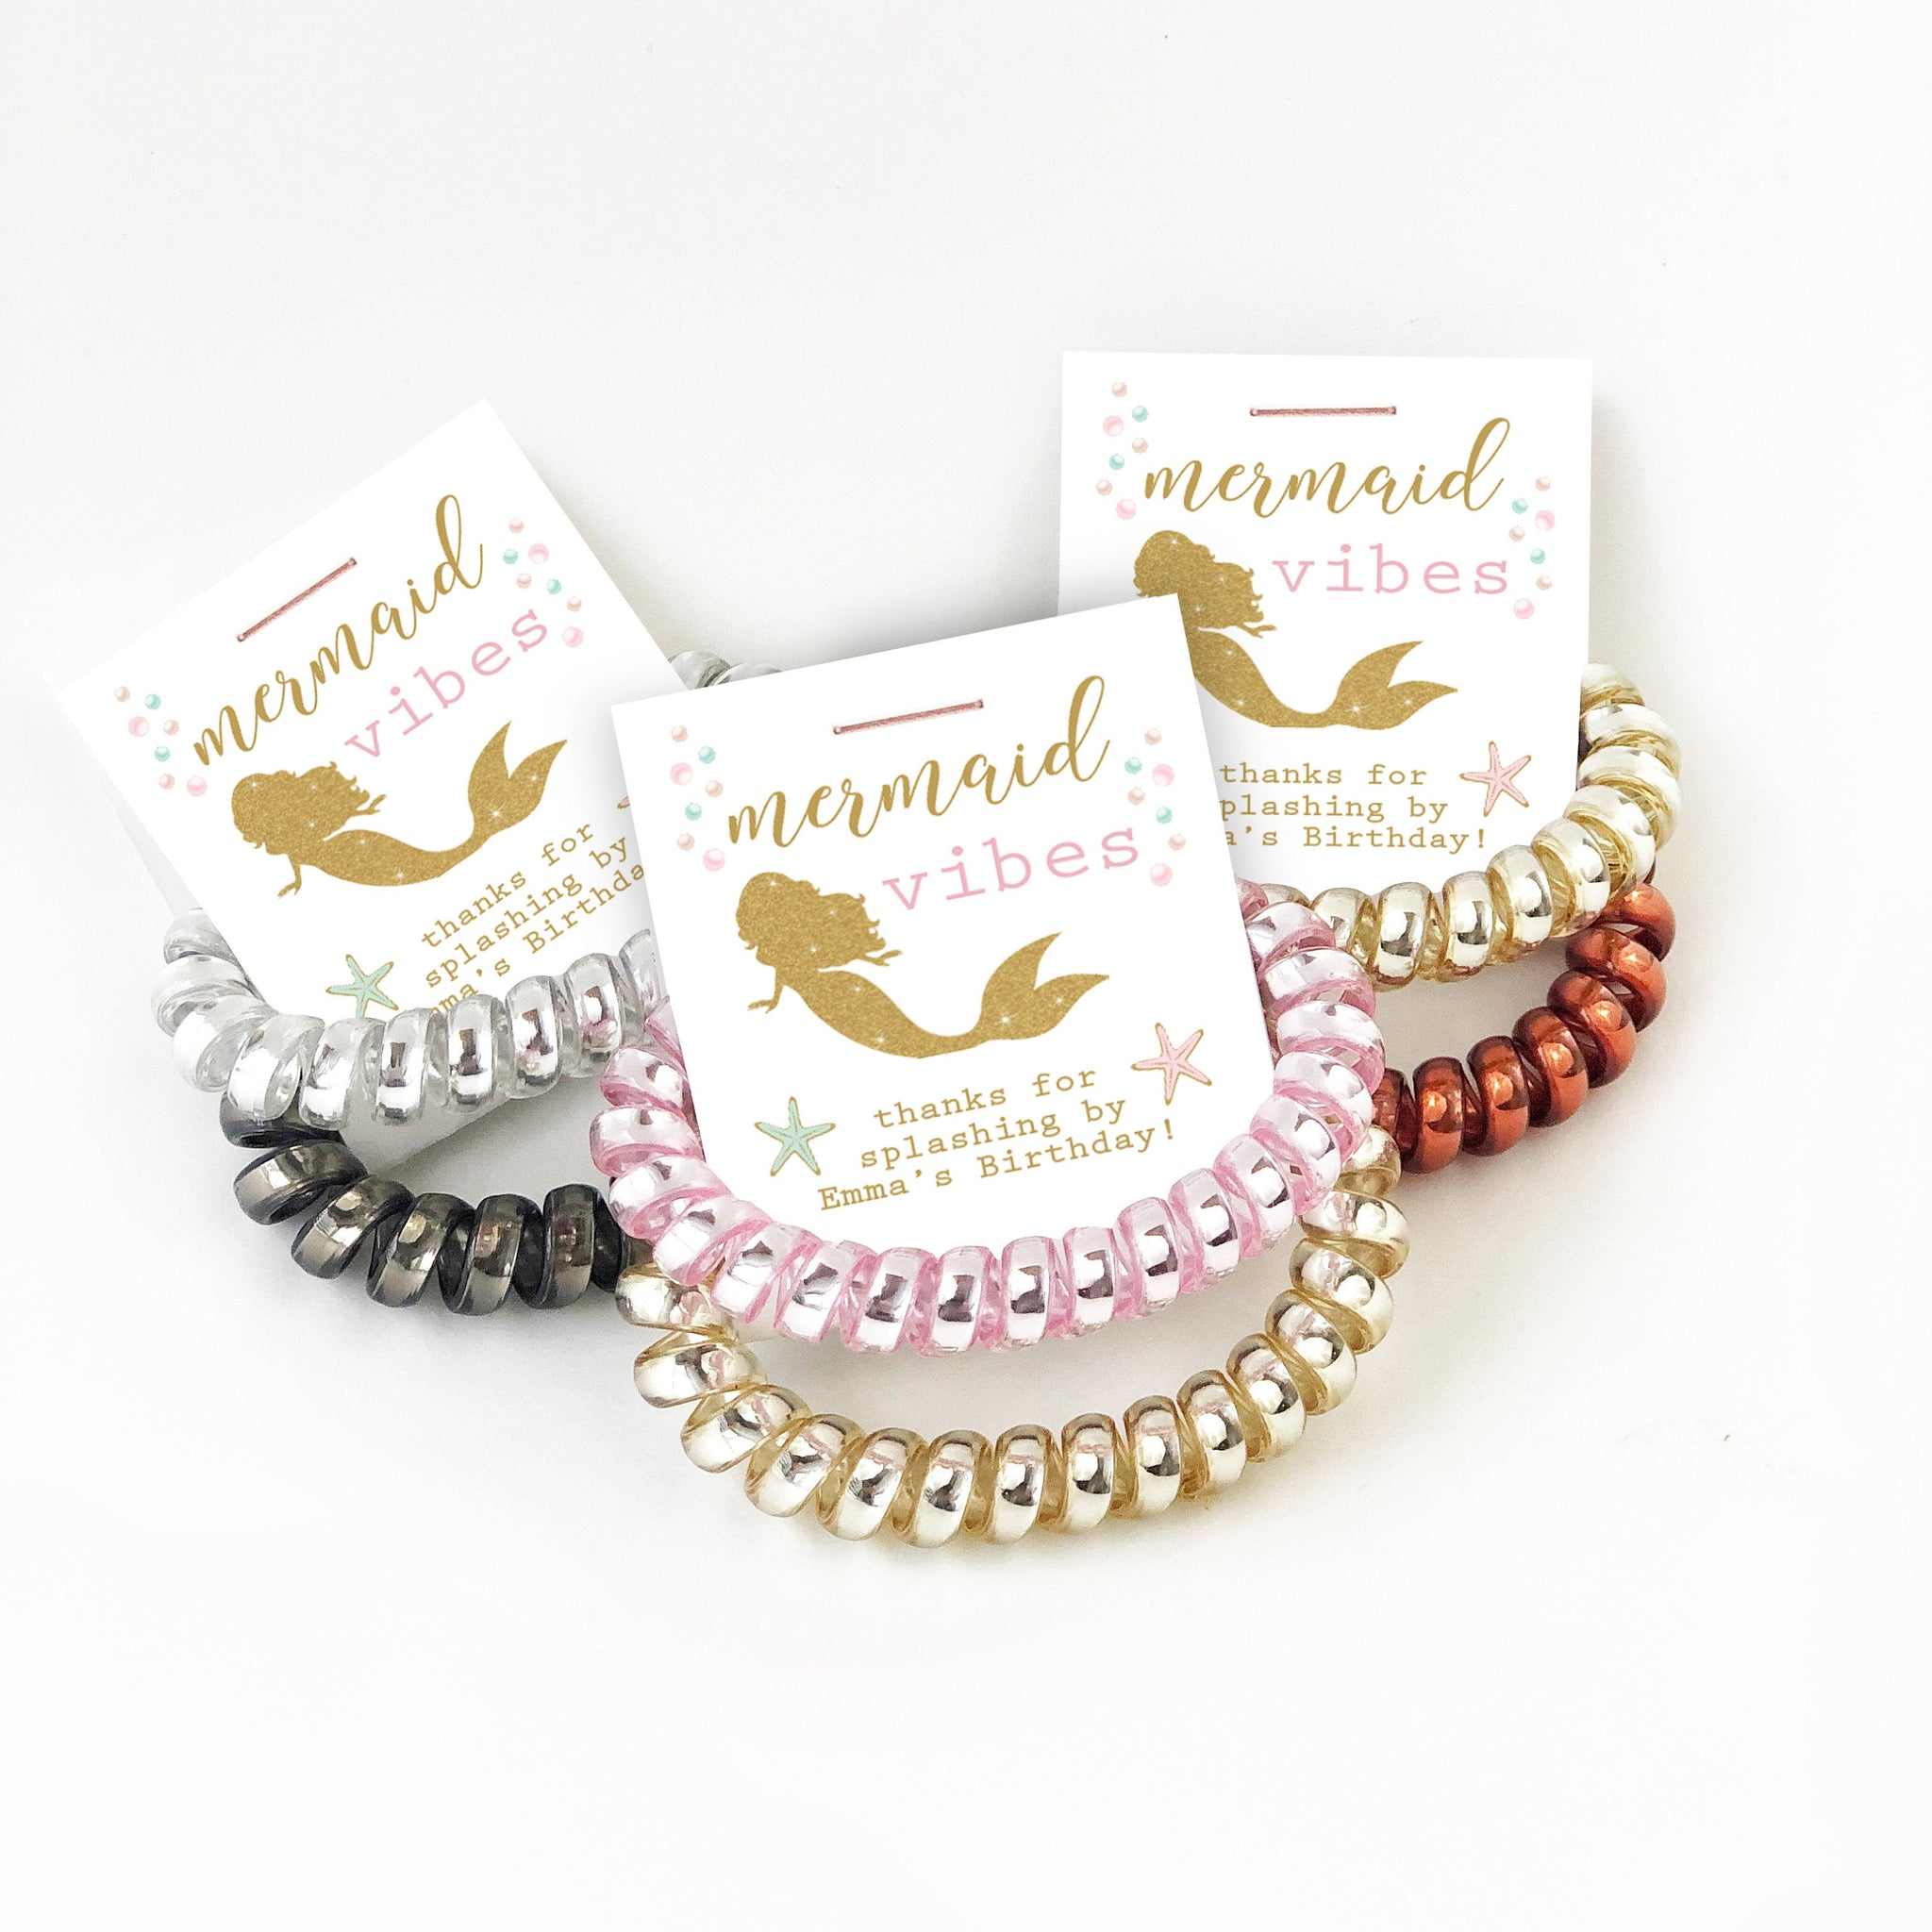 Mermaid Birthday Party Favors, Spiral Hair Ties - @PlumPolkaDot